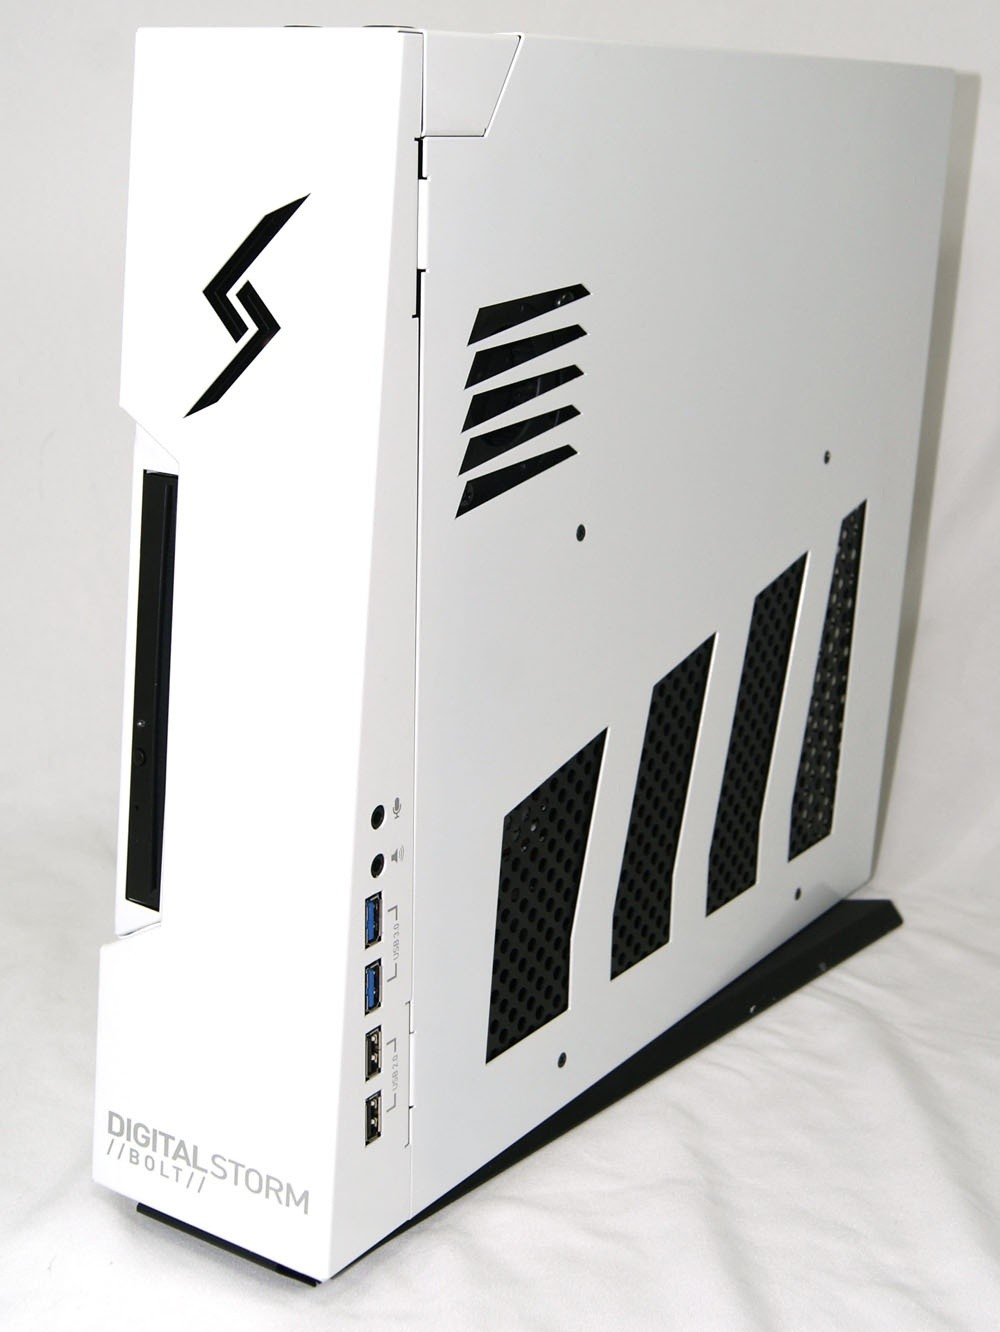 digital_storm_bolt_desktop_gaming_pc_review